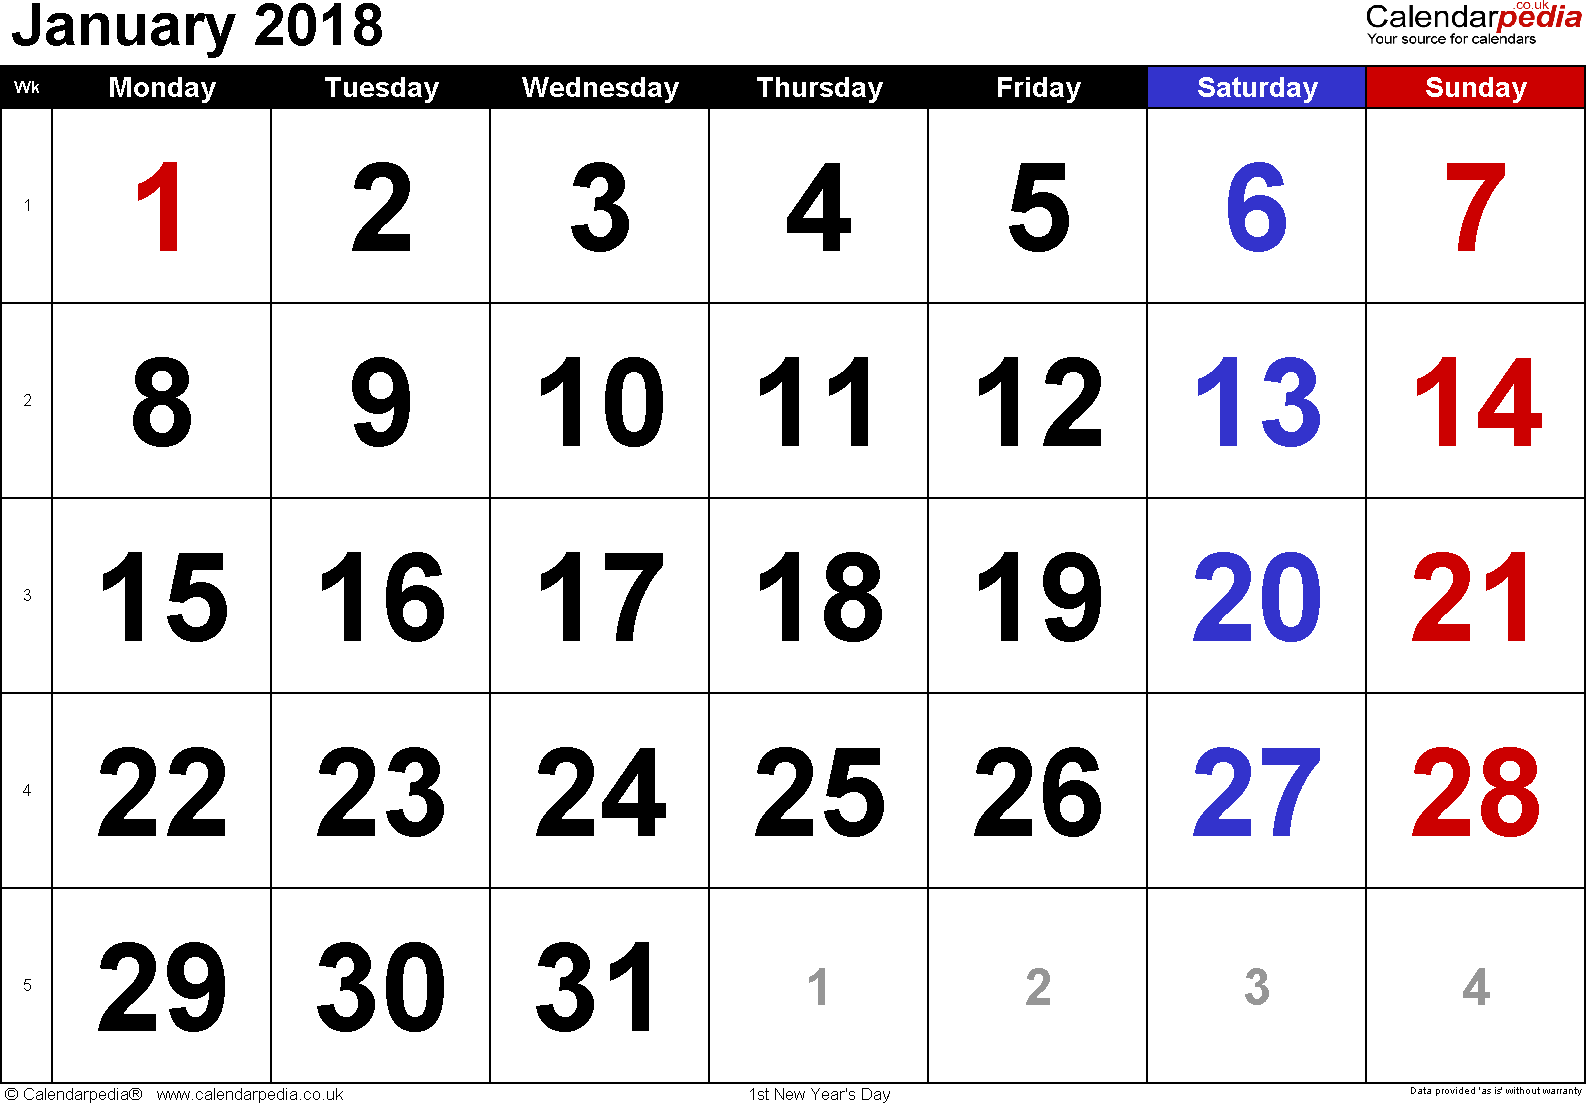 calendar january 2018 uk bank holidays excel pdf word templates